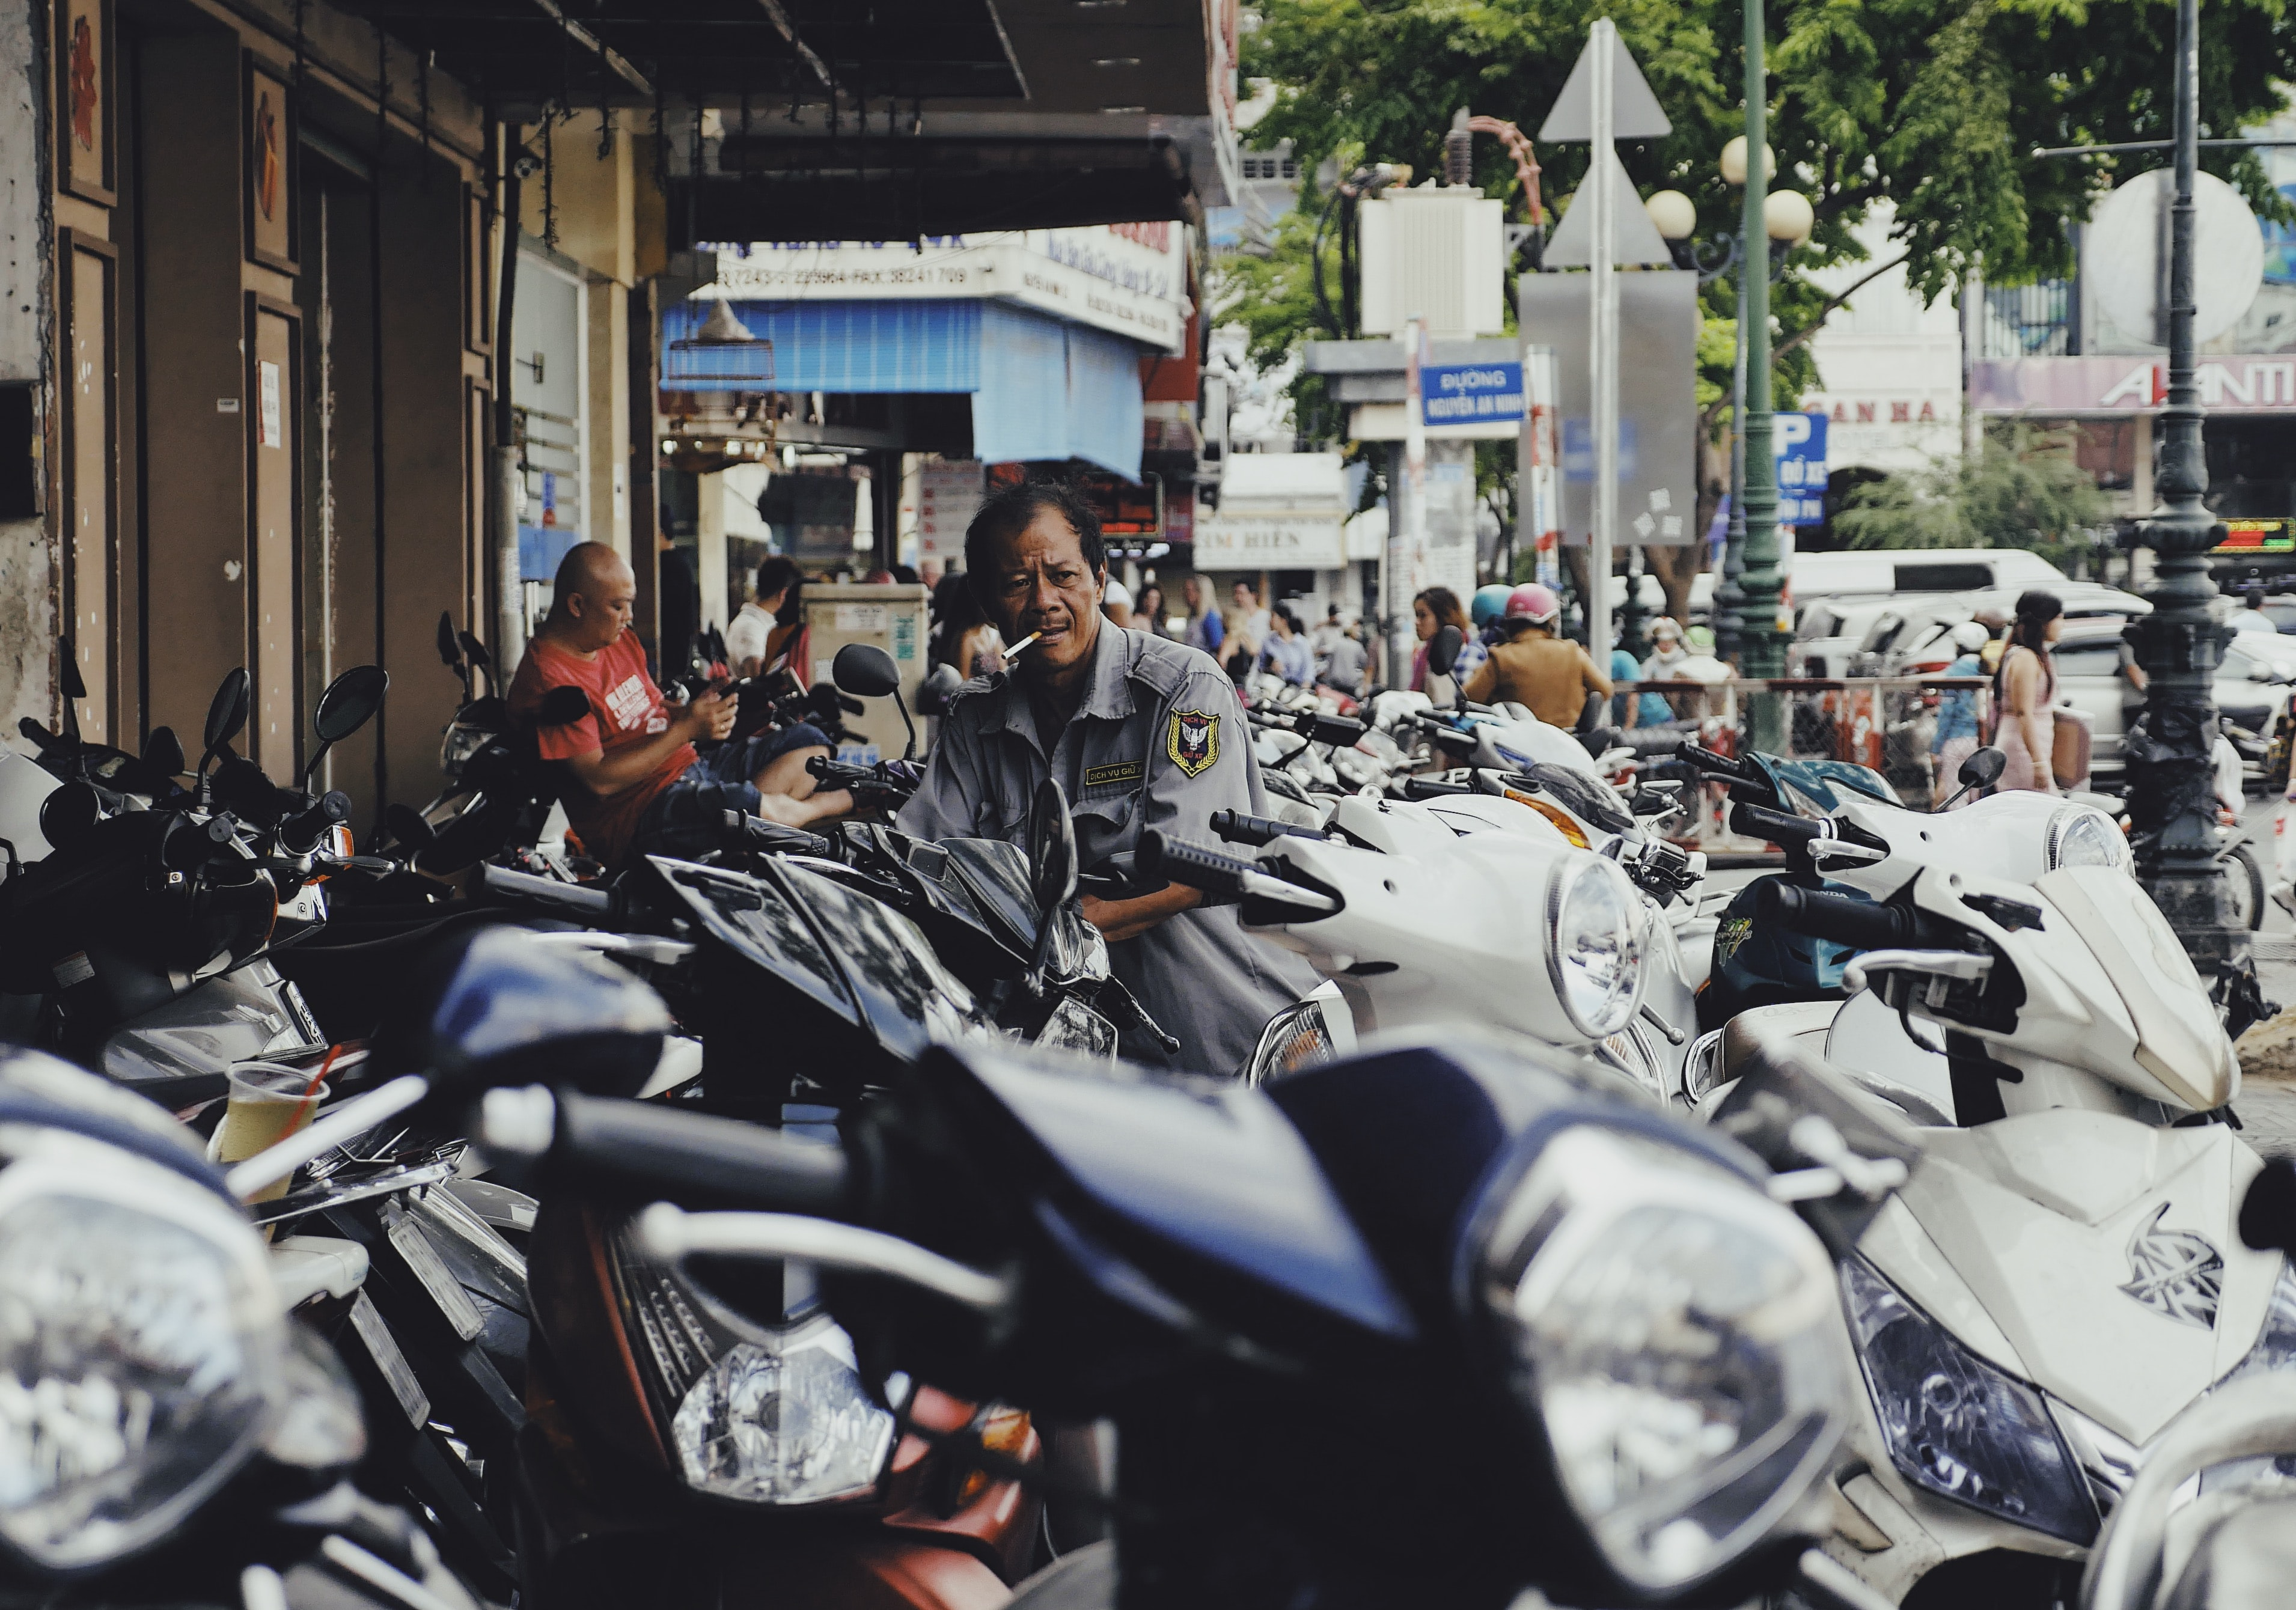 A man smokes a cigarette while standing among an array of motor scooters in the city